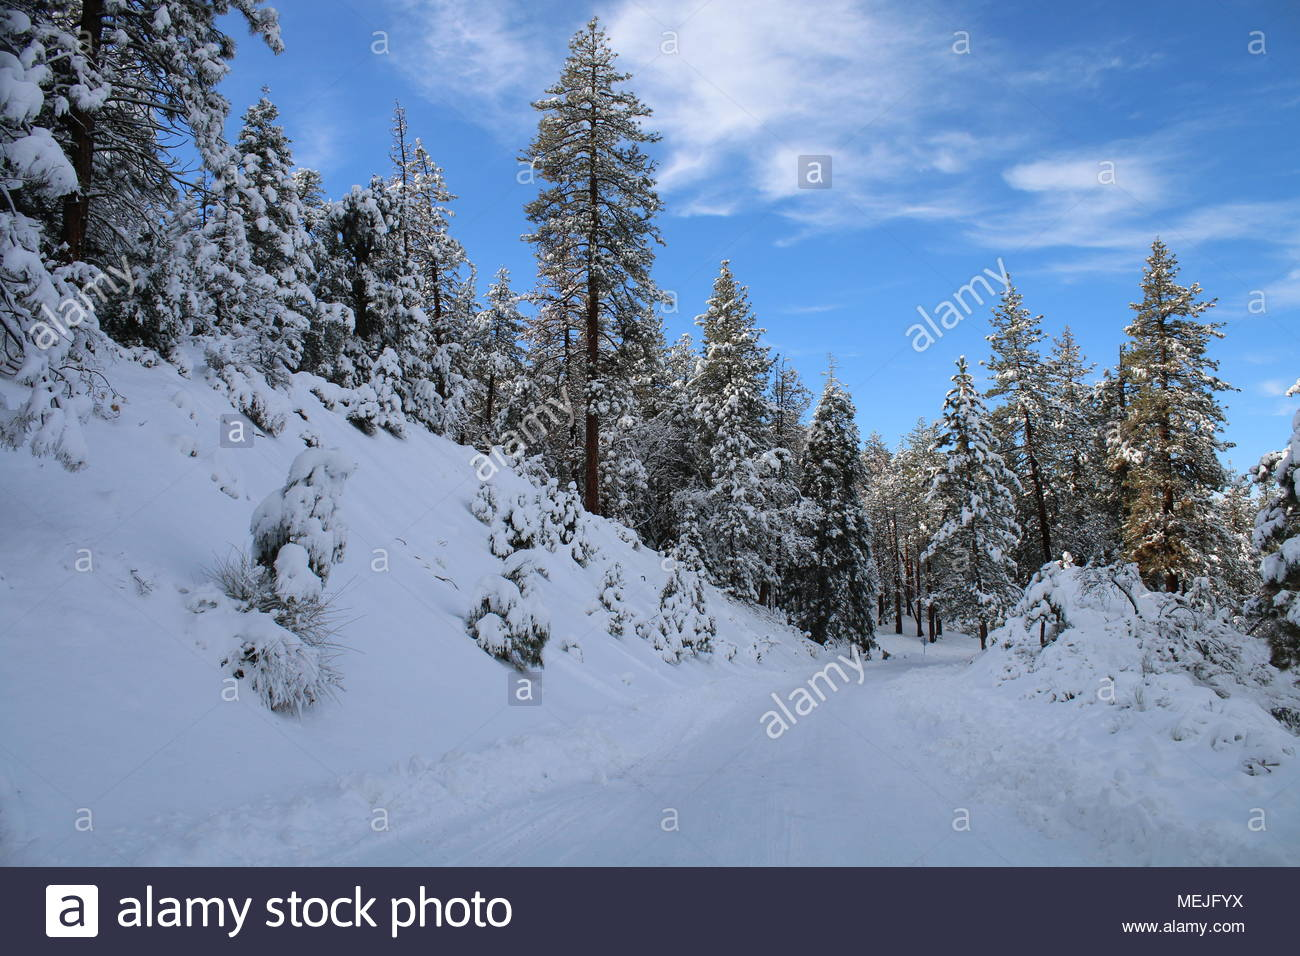 Snow Covered Cuddy Valley Road in Frazier Park near Mt Pinos, Los Padres National Park, Los Angeles, CA, USA - Stock Image